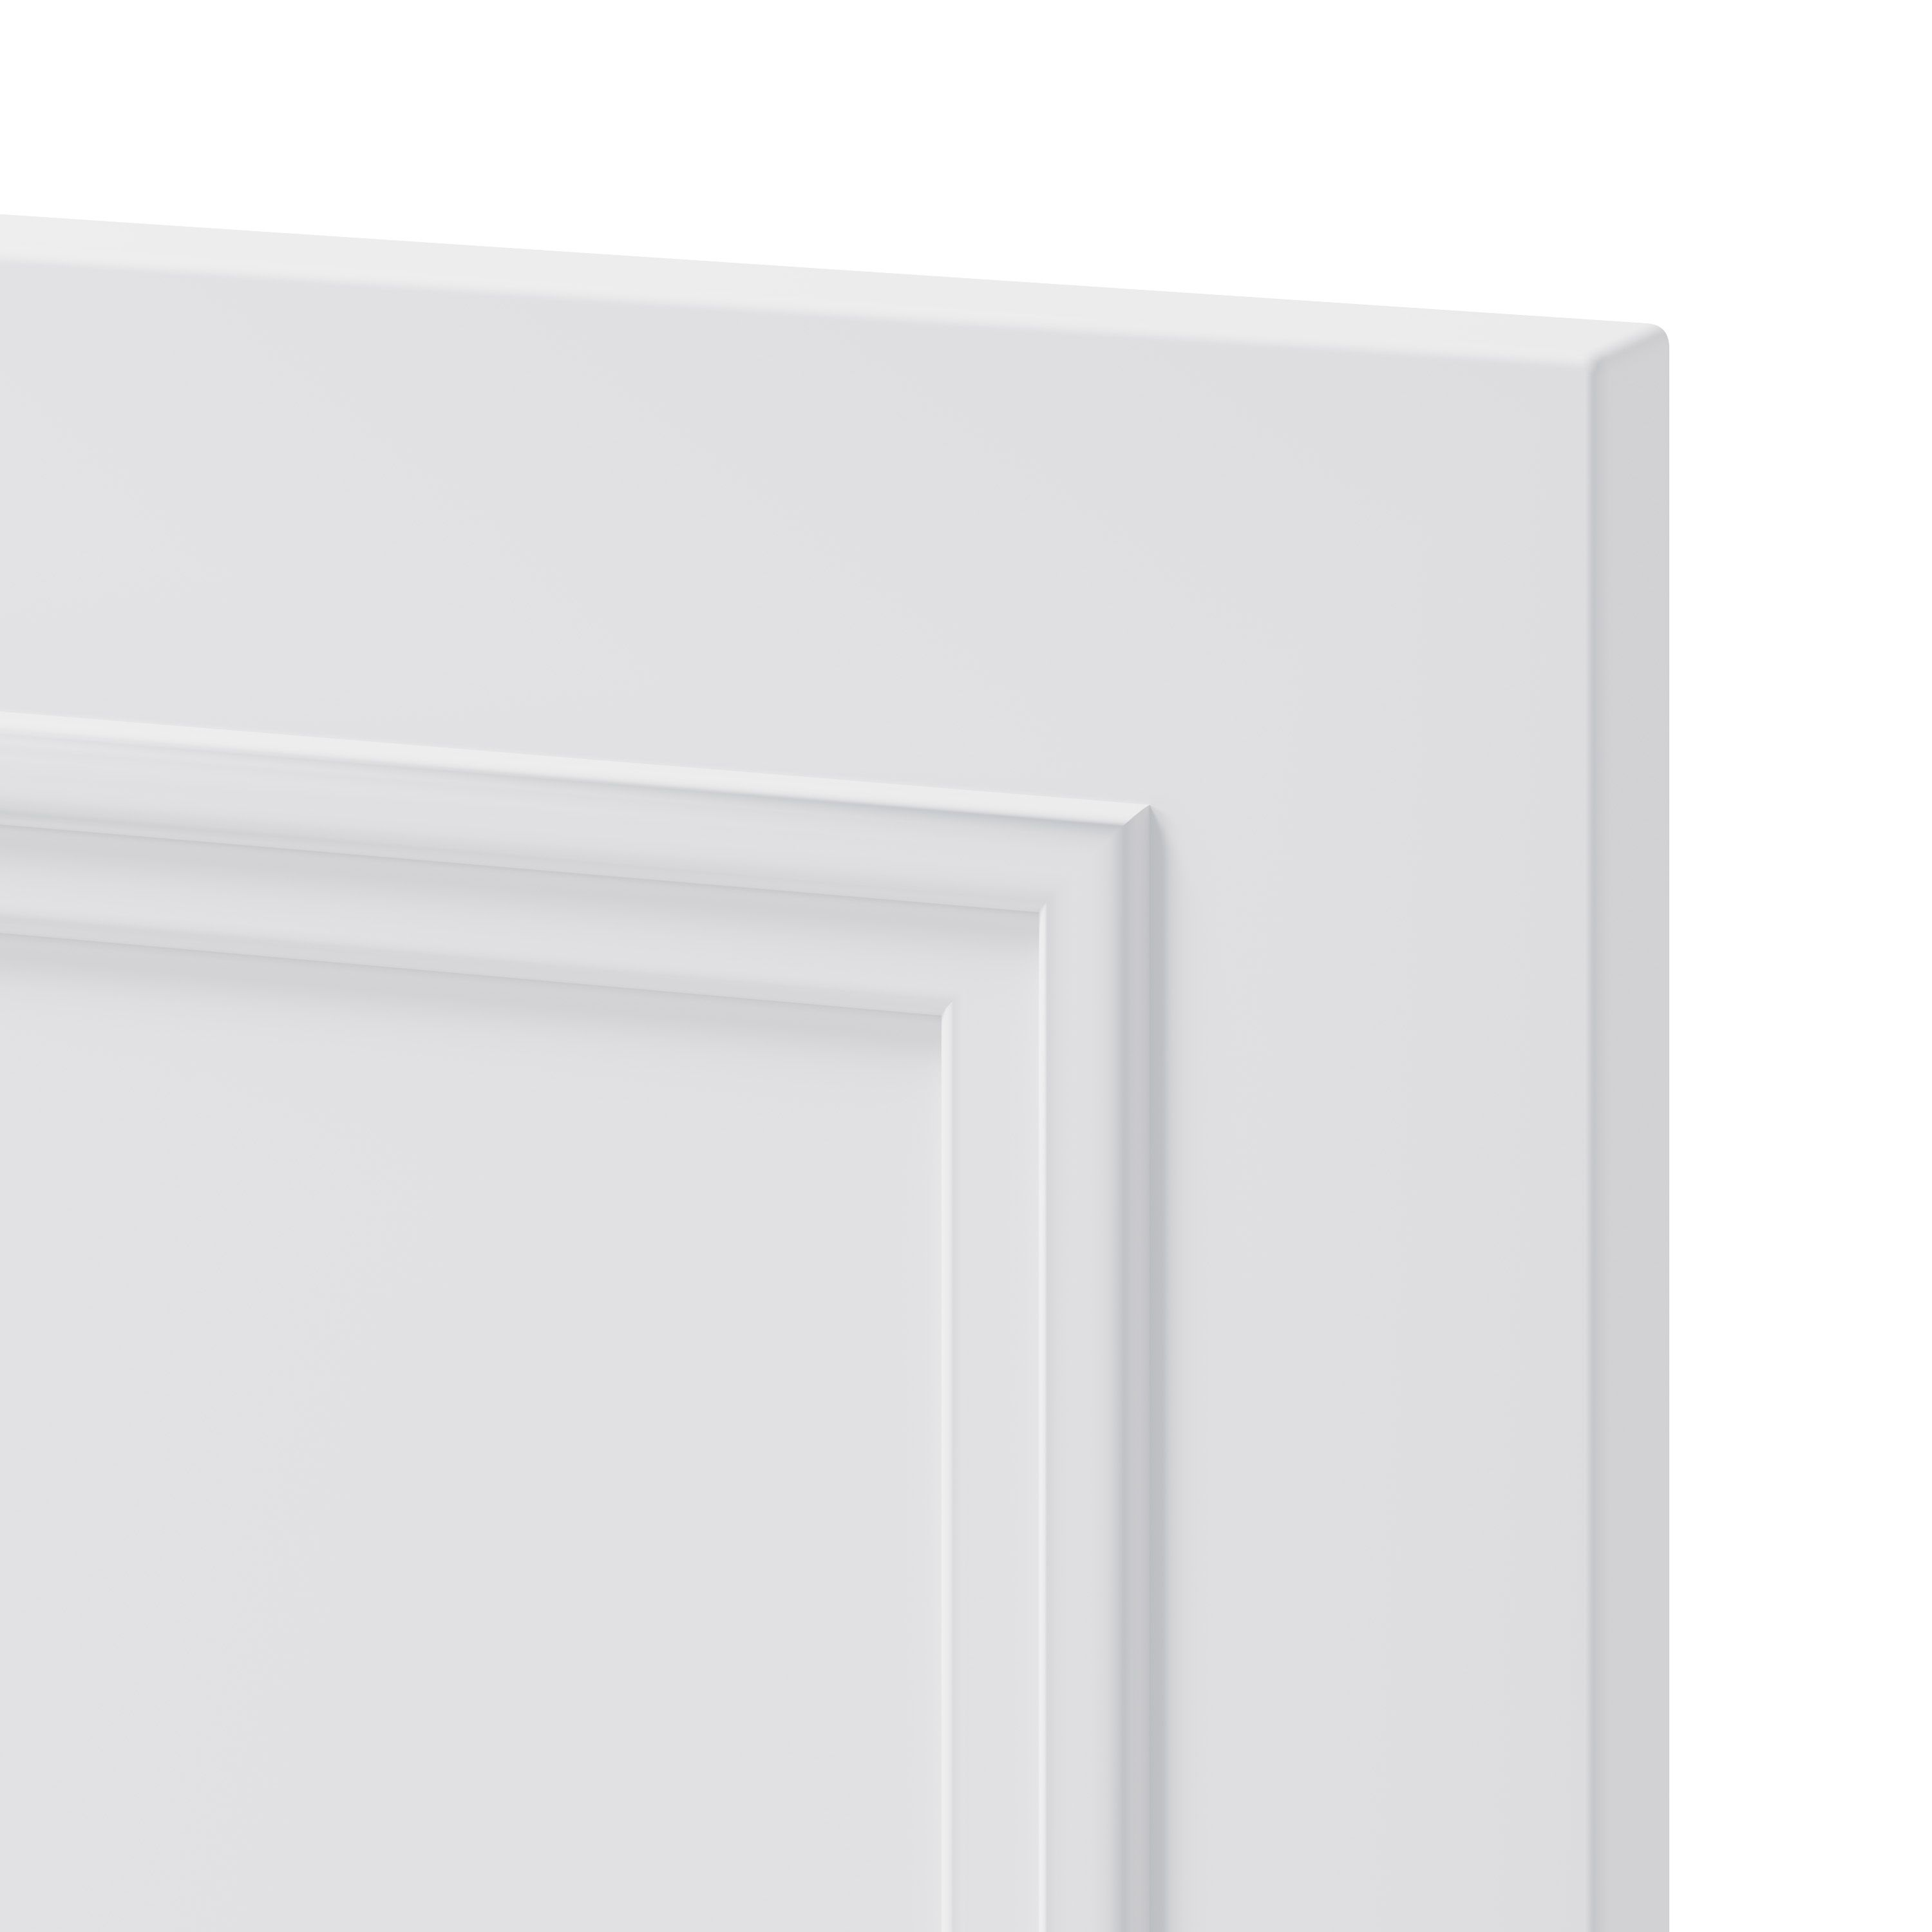 GoodHome Artemisia Matt white classic shaker moulded curve Moulded curve Highline Cabinet door (W)500mm (T)20mm